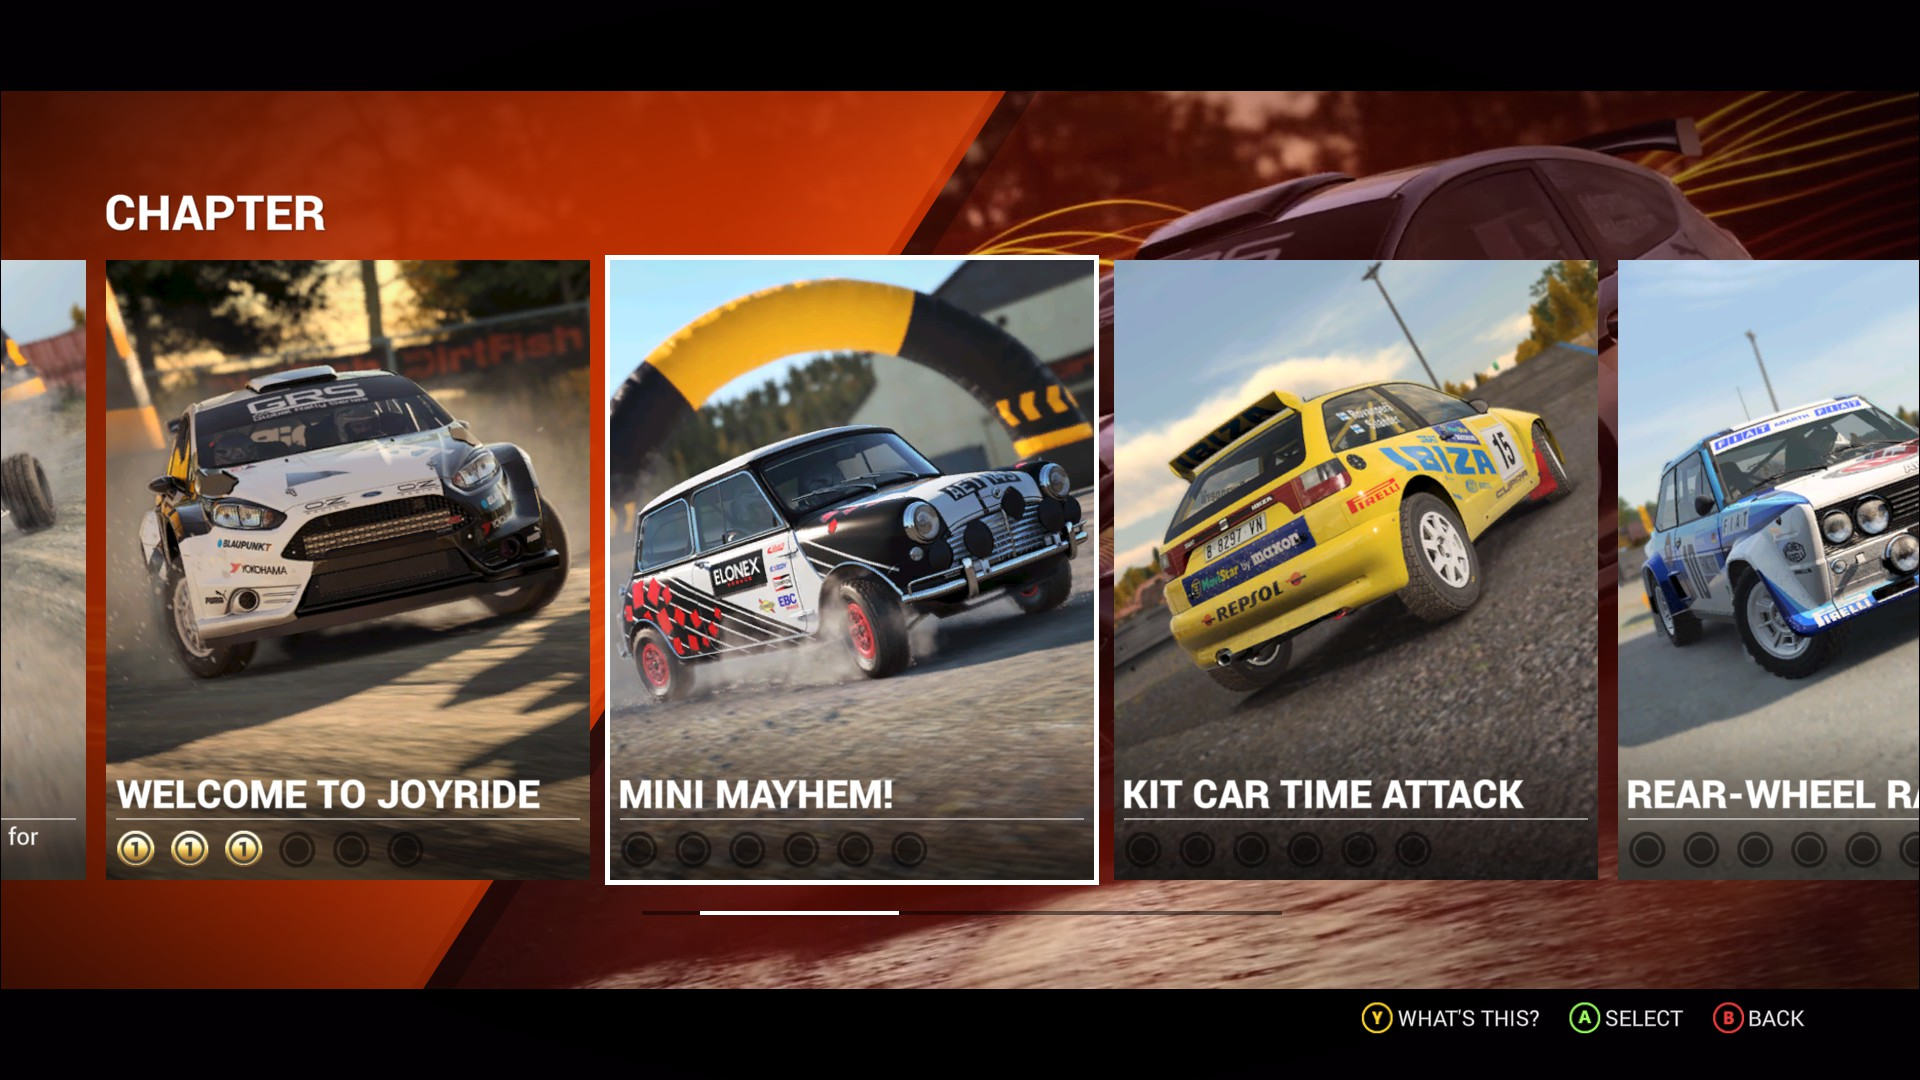 The DiRT Academy Also Has A Joyride Mode And Set Of Time Trial Options You Can Complete Along With Trials Comes Smash Attack An Option That